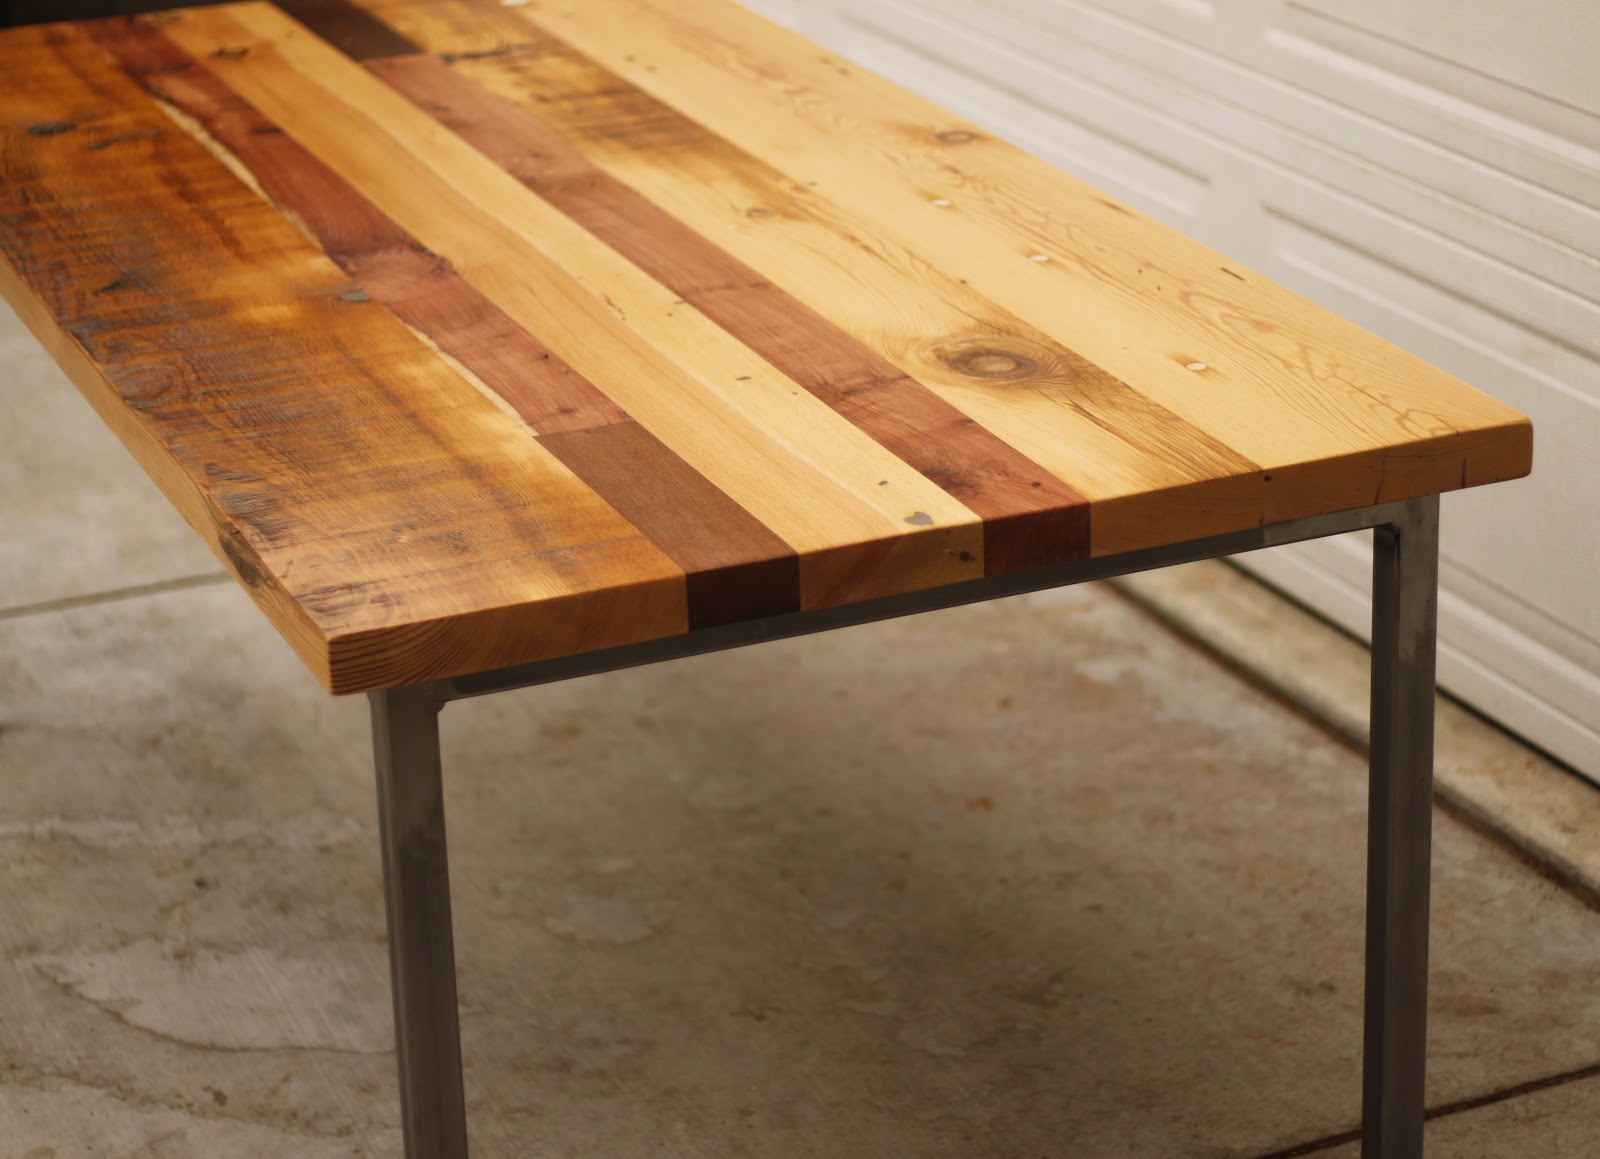 Arbor exchange reclaimed wood furniture patchwork table for Reclaimed wood table designs